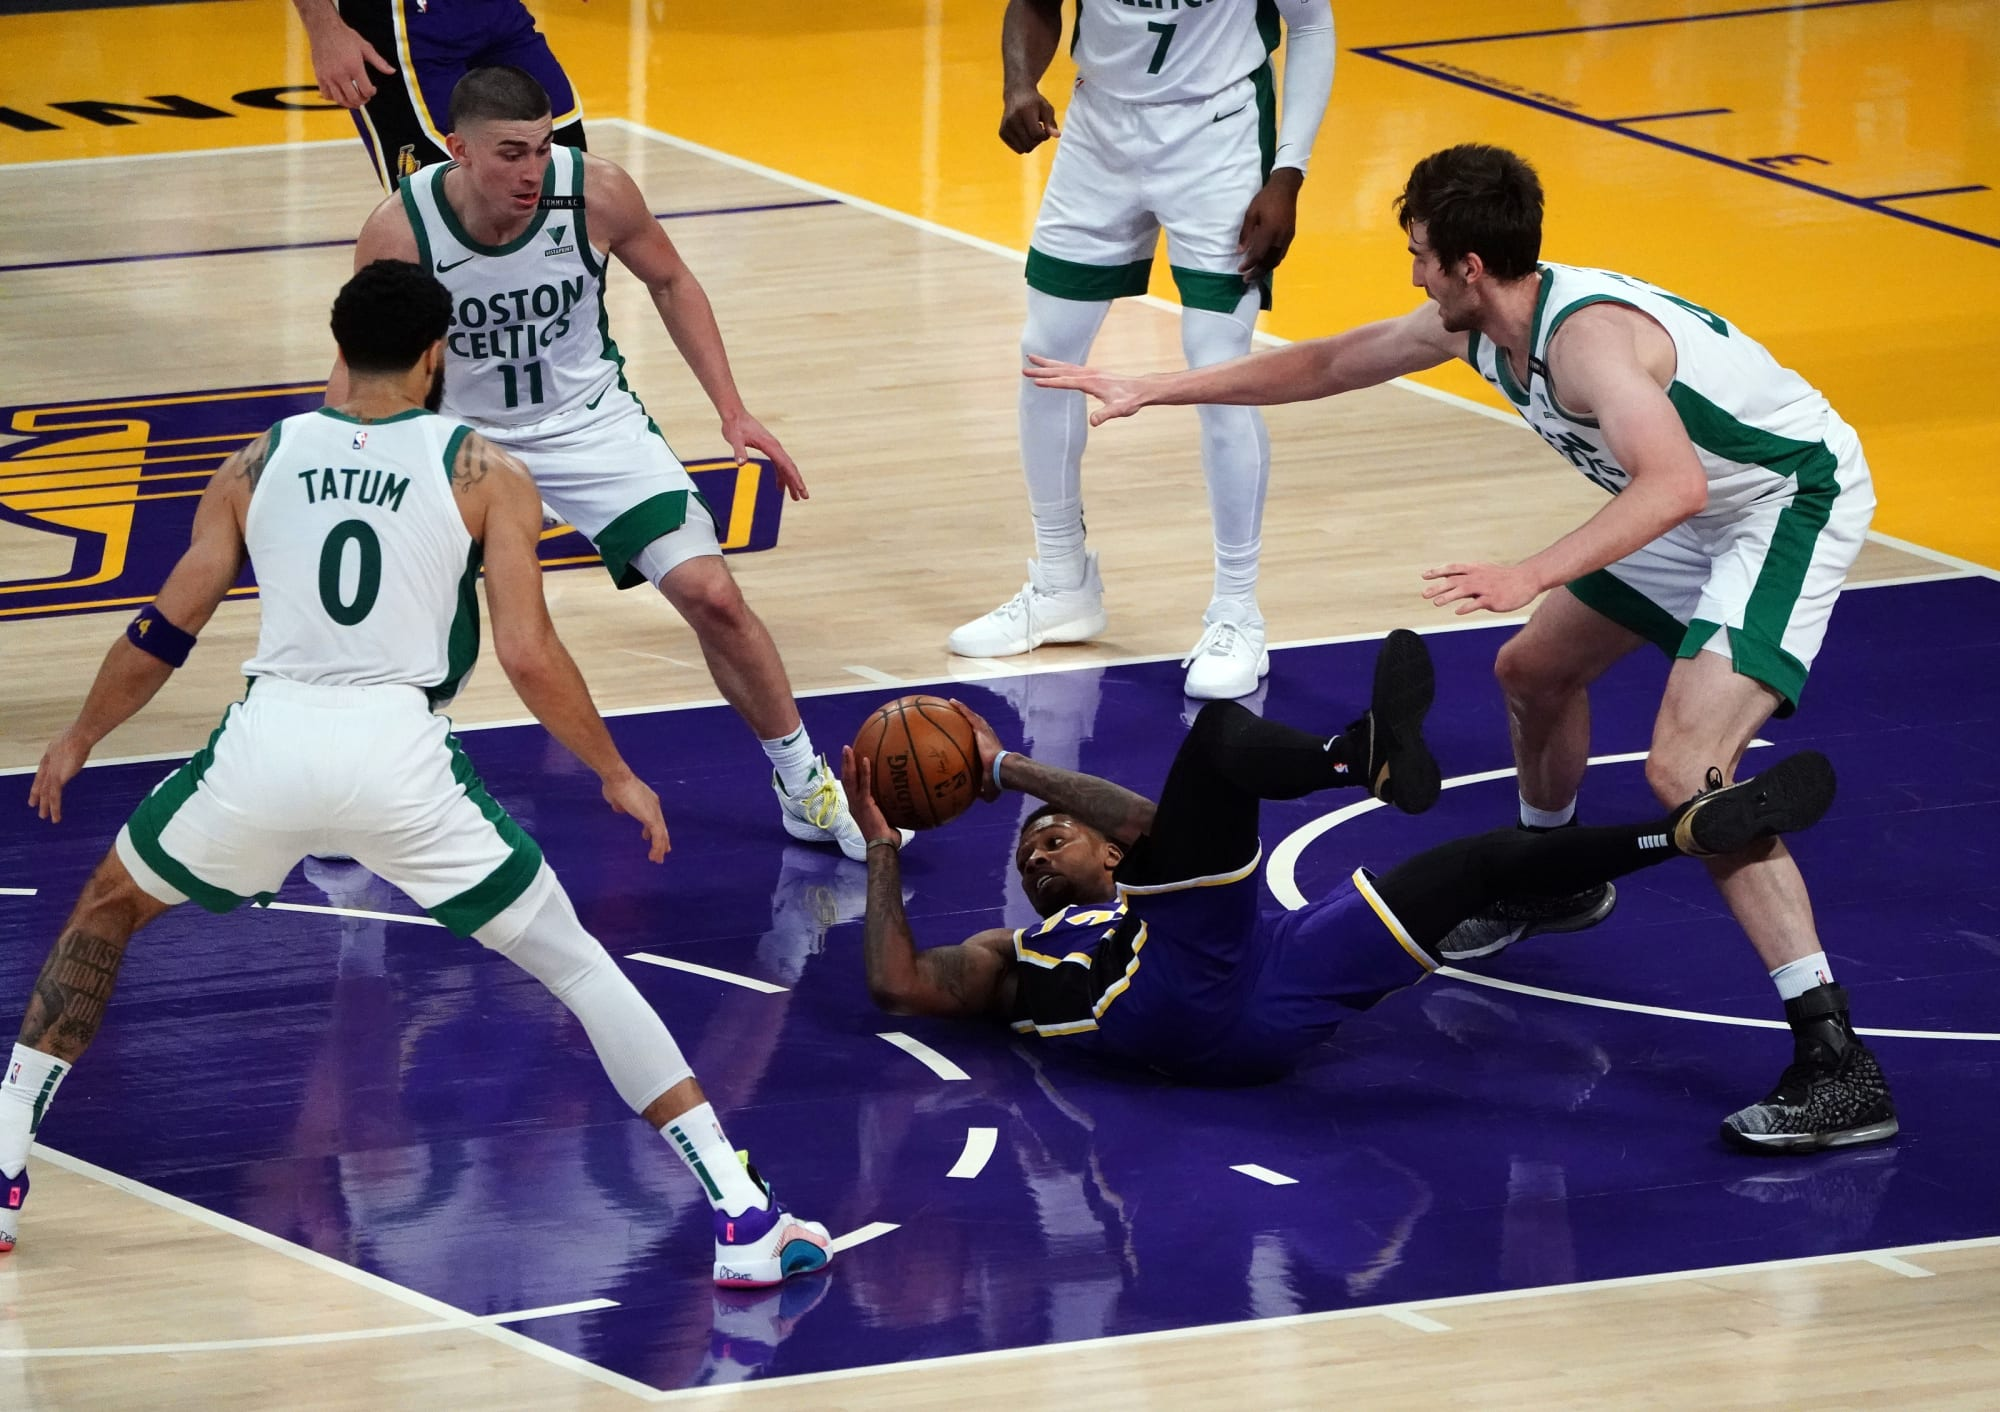 Los Angeles Lakers: 4 Lessons from celebrating fans in loss to Celtics